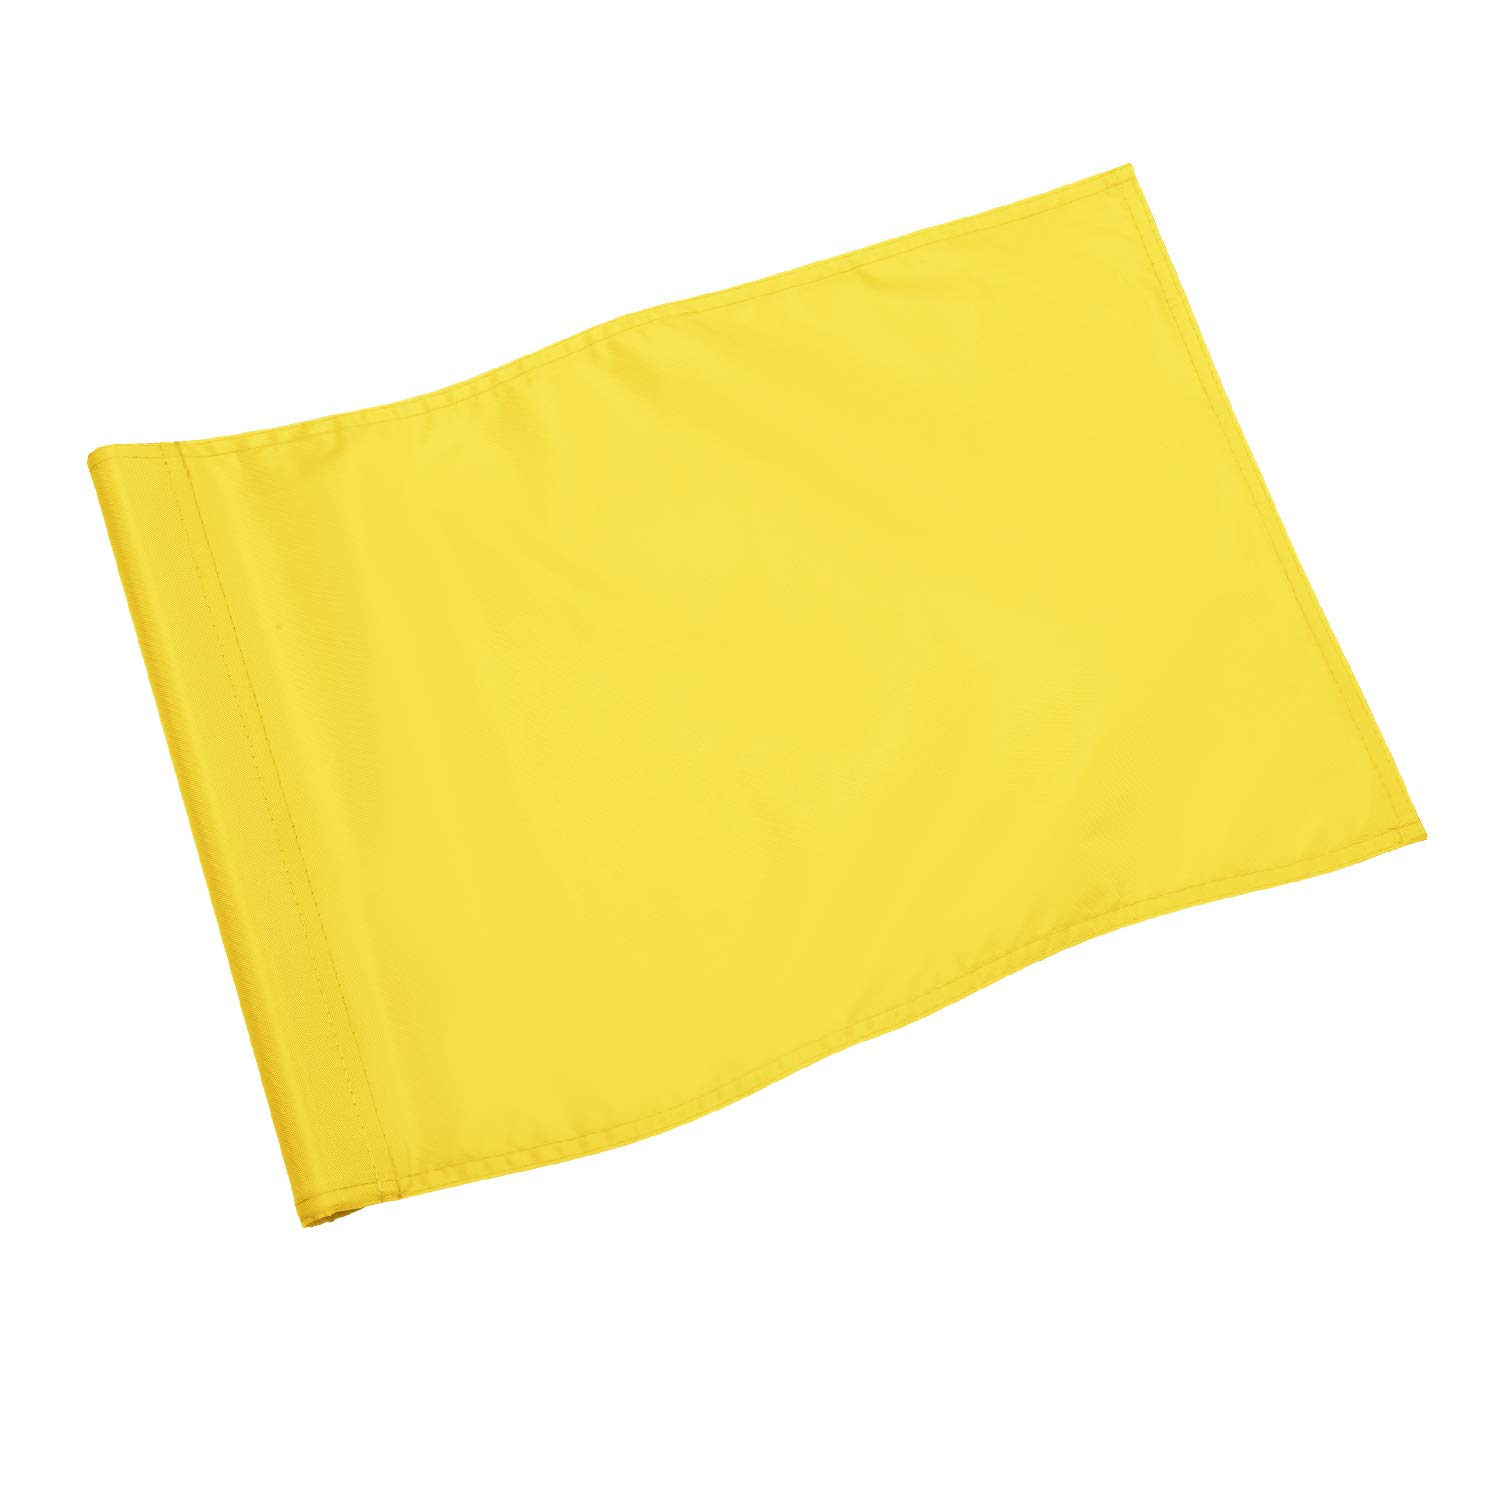 KINGTOP Solid Golf Flag with Plastic Insert, Putting Green Flags for Yard, Indoor/Outdoor, Garden Pin Flags, 420D Premium Nylon Flag, 13'' L x 20'' H, Yellow by KINGTOP